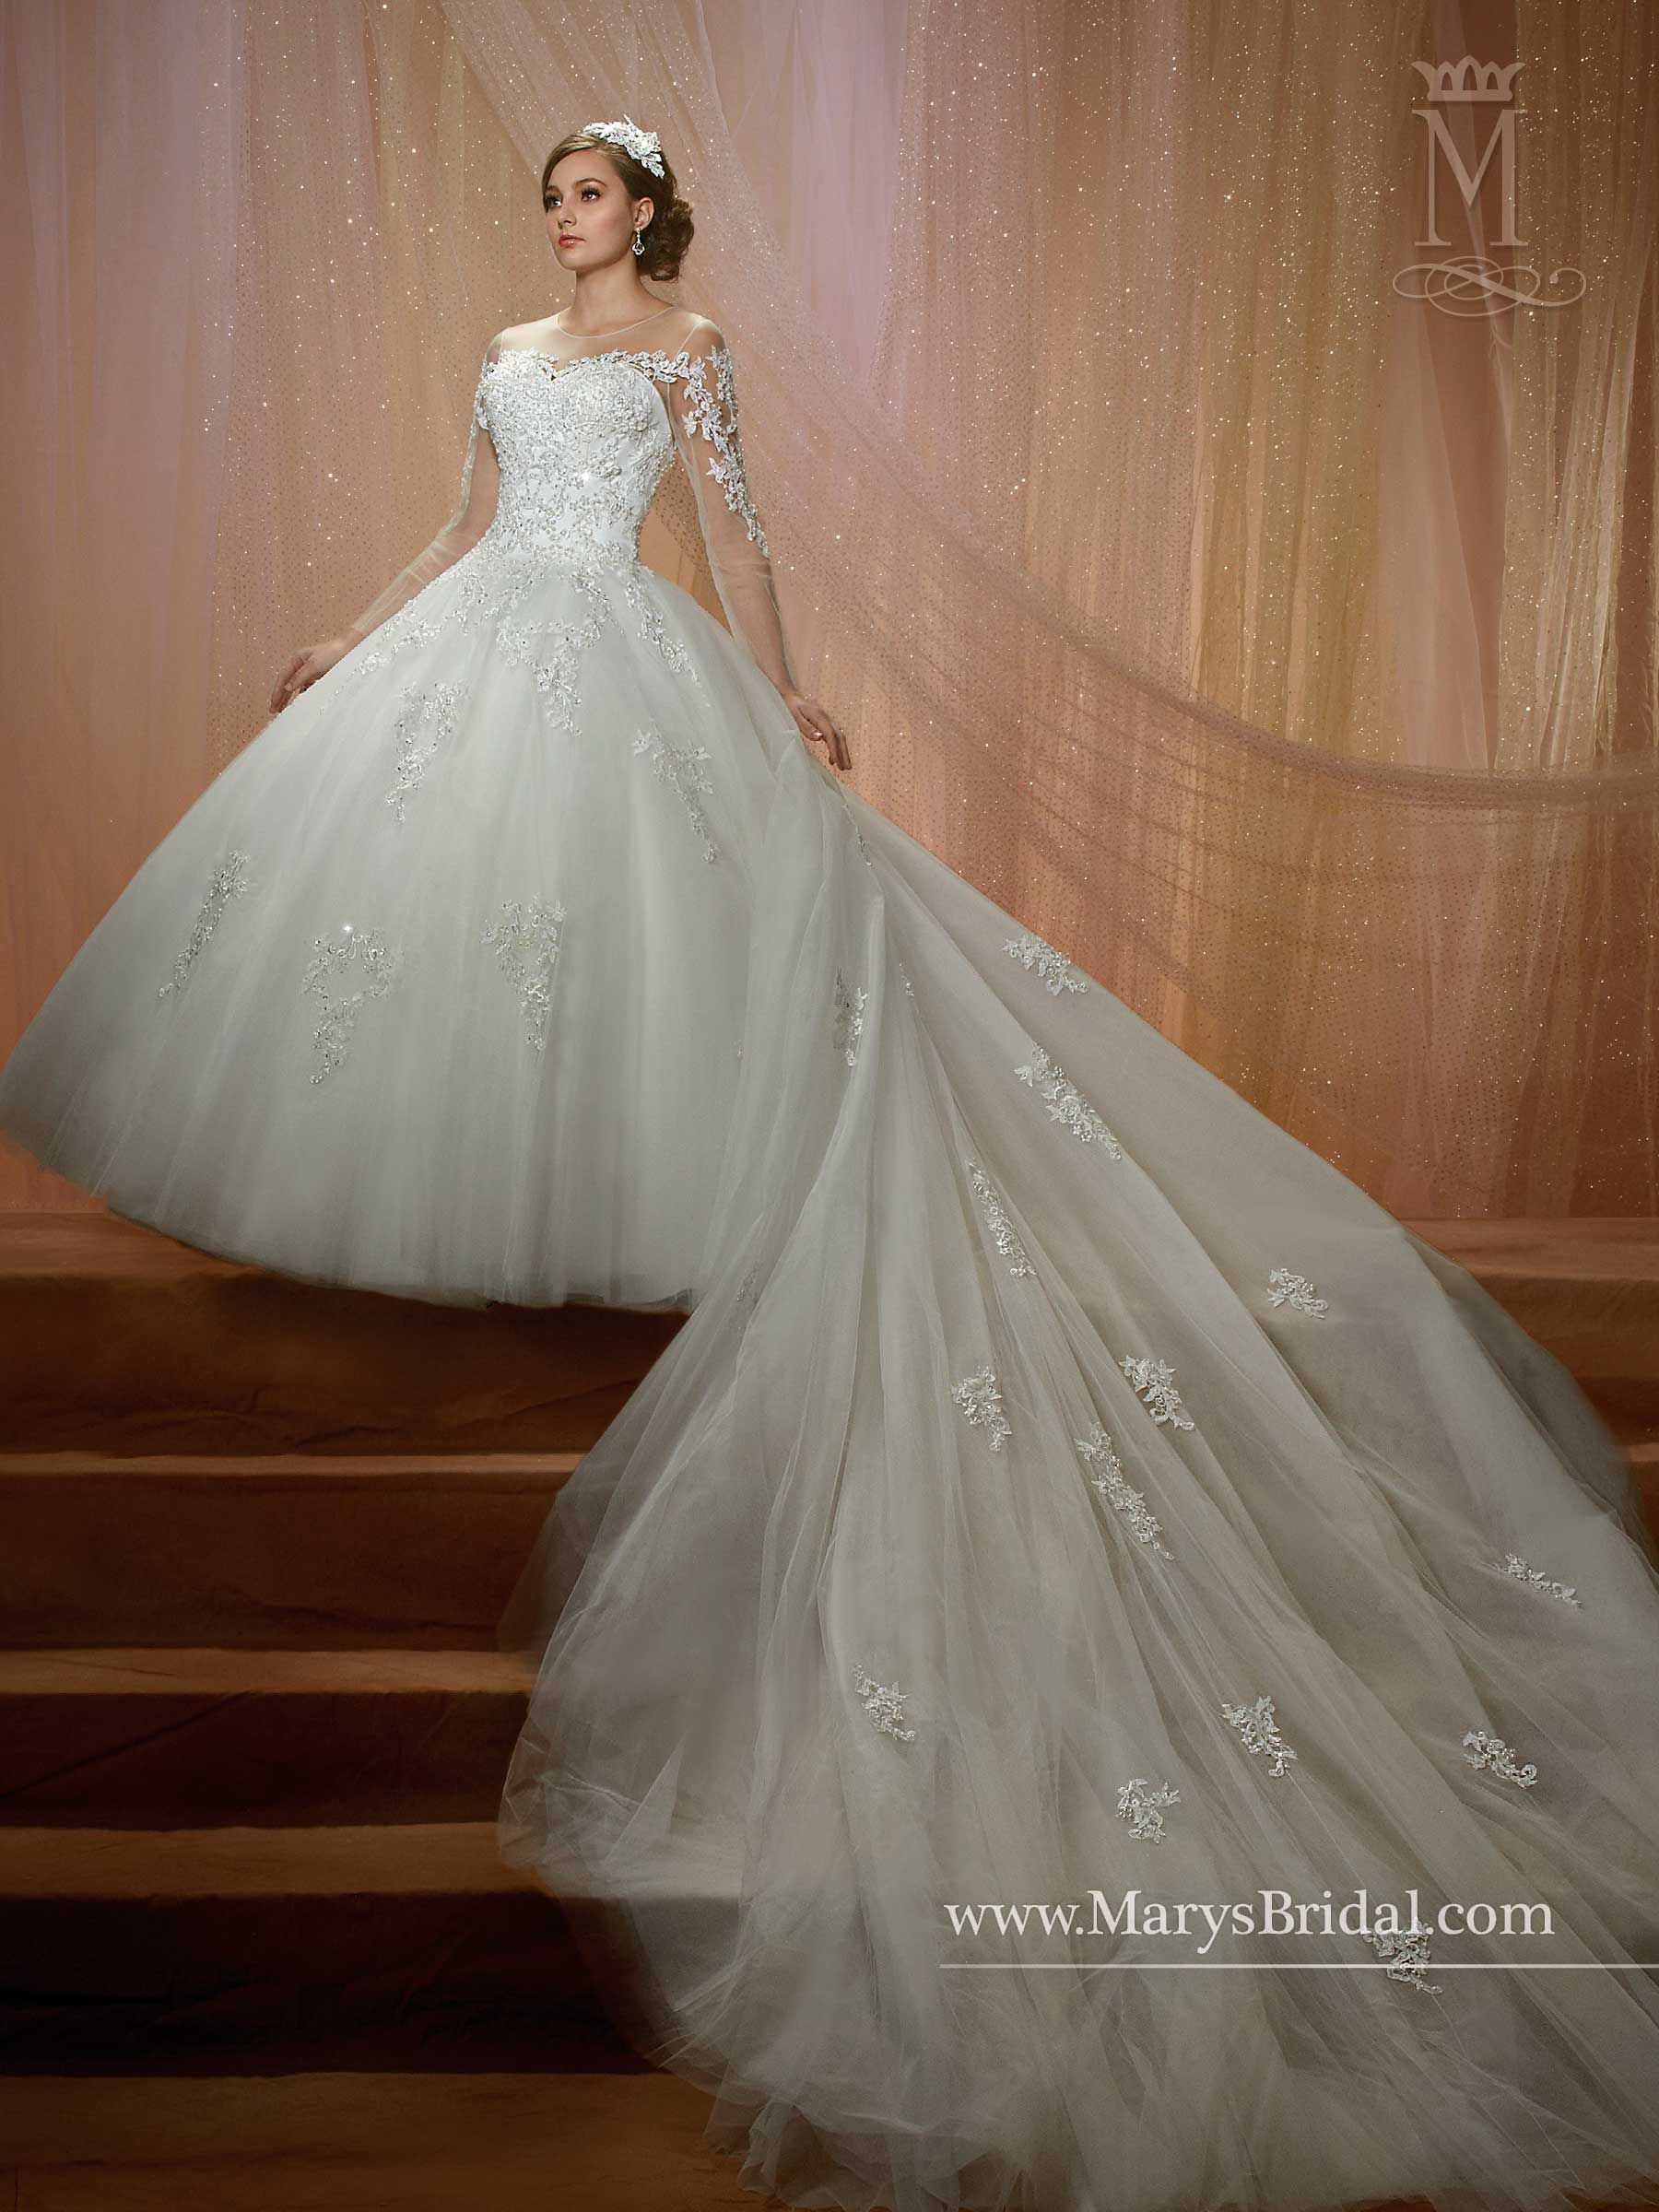 Style F16 6462 858 00 Best Bridal Prices Com Tulle And Lace Ball Gown With Illusion Scoop Neckline Back Ons Long Sleeves